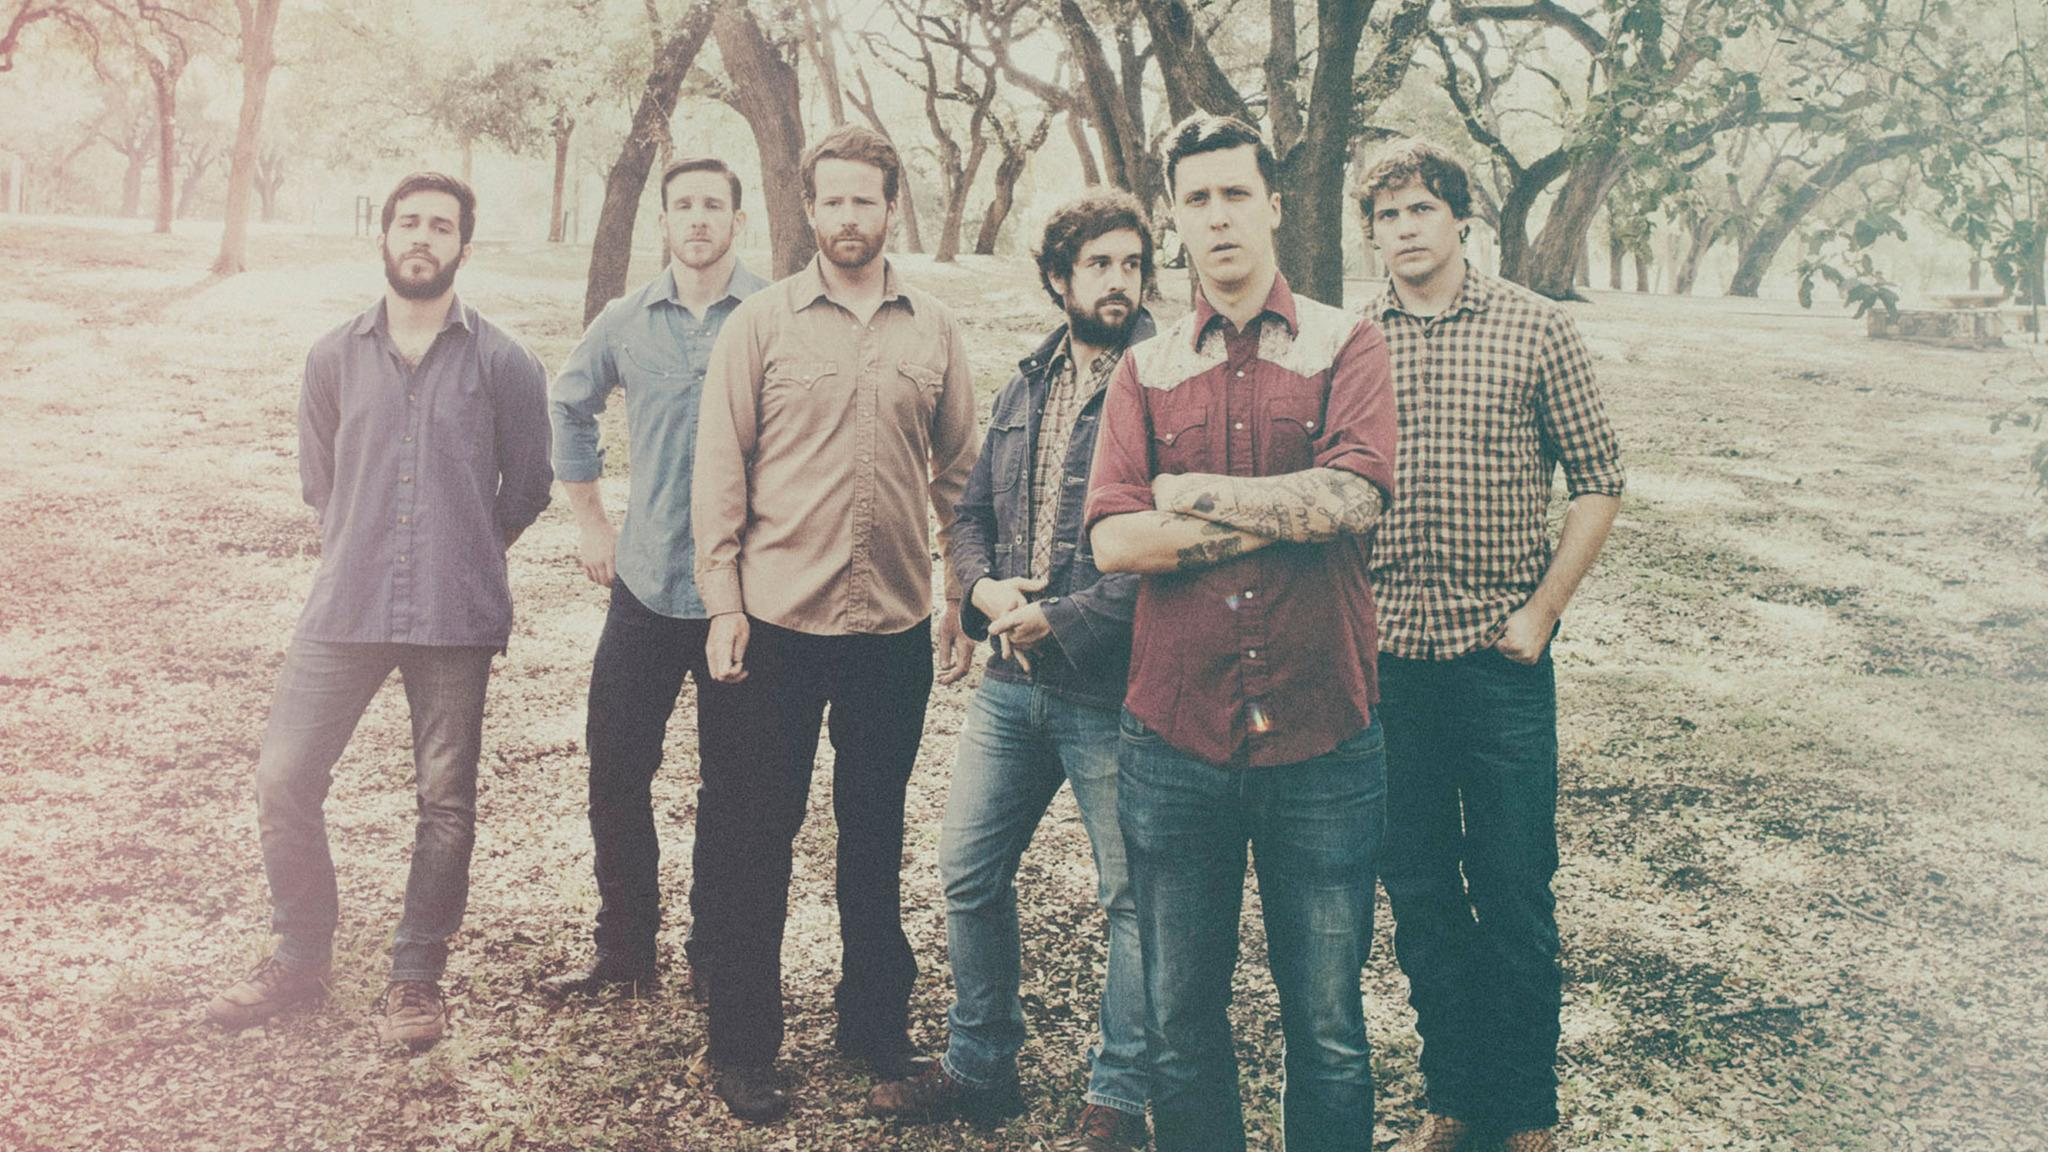 American Aquarium at The Vogue at The Vogue